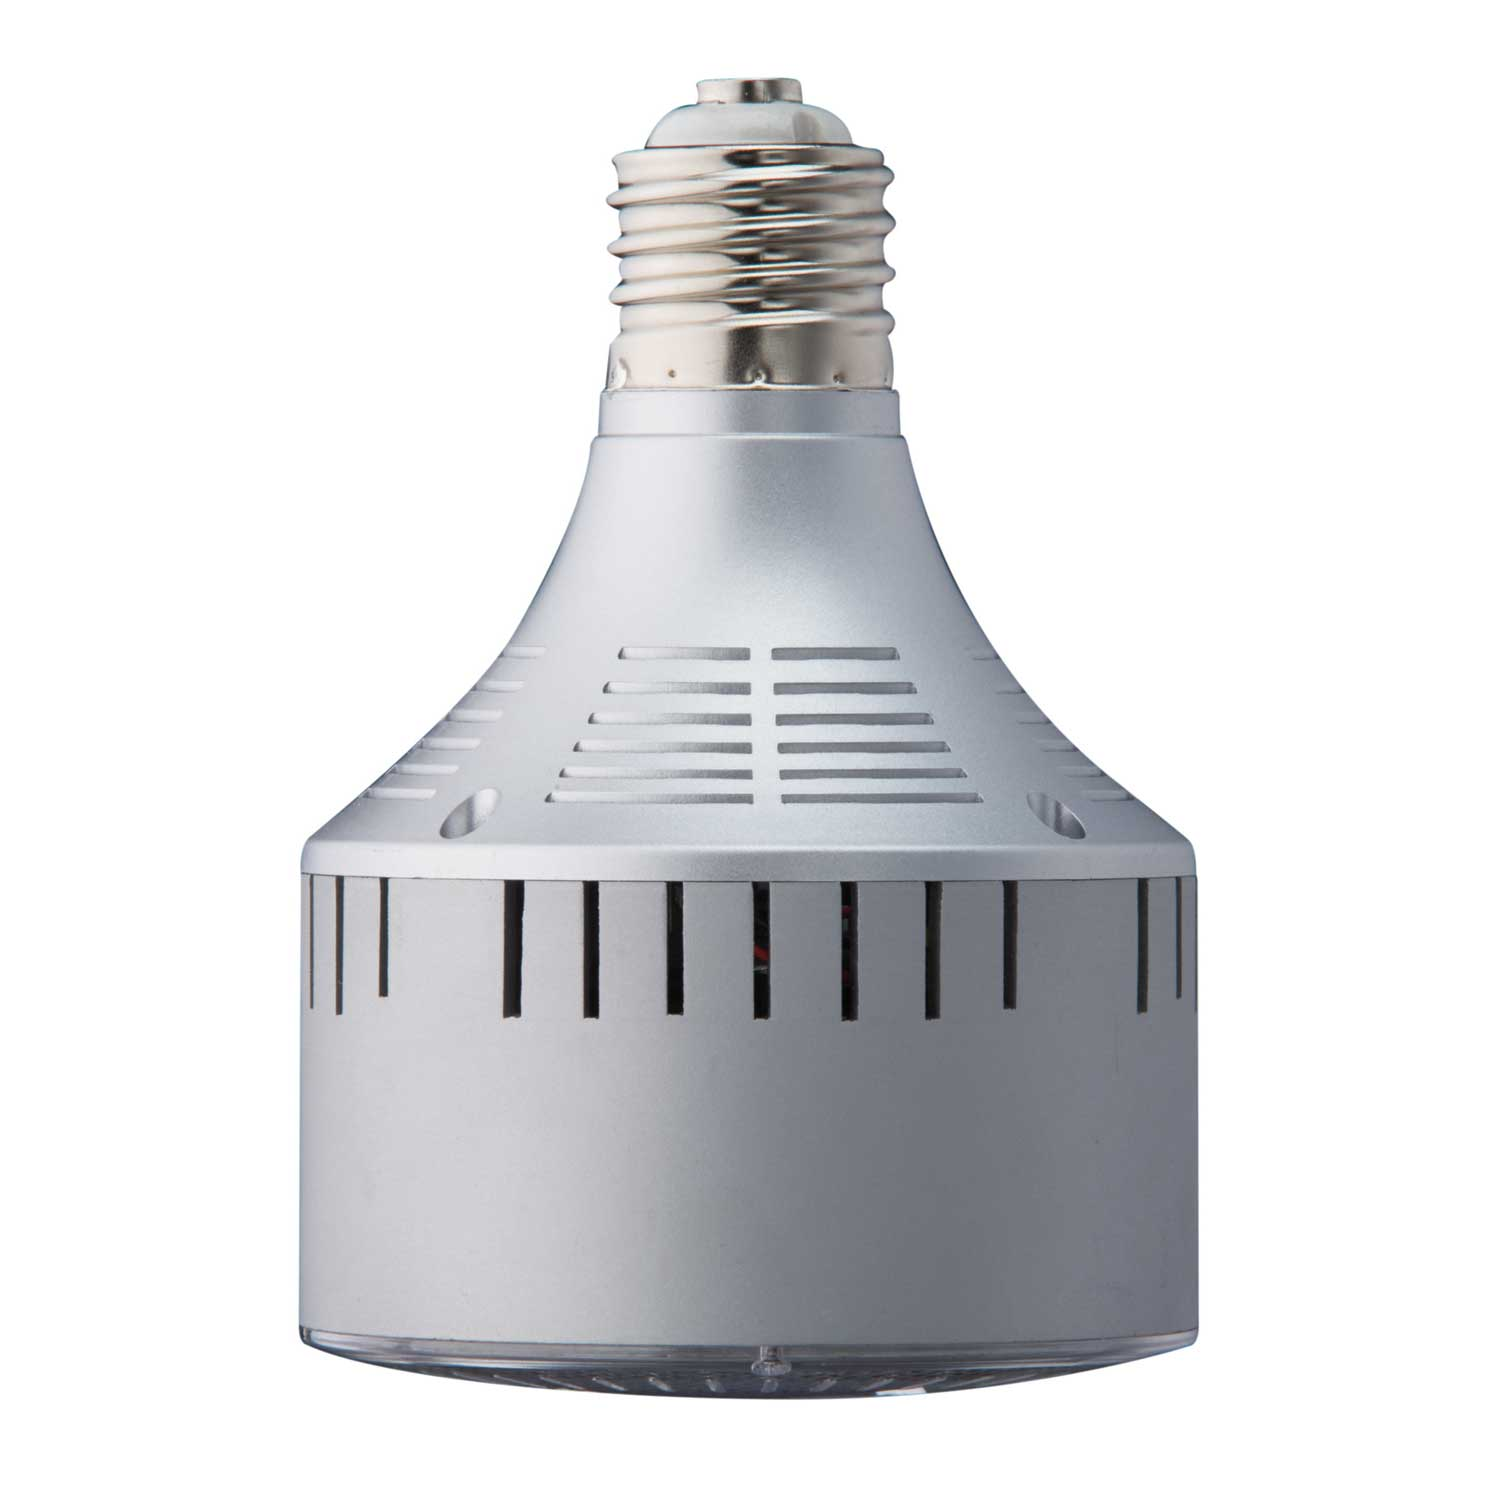 Light Efficient Design LED 8055E 30W Par38 High Power 4200K Retrofit Lamp, LED-8055E42